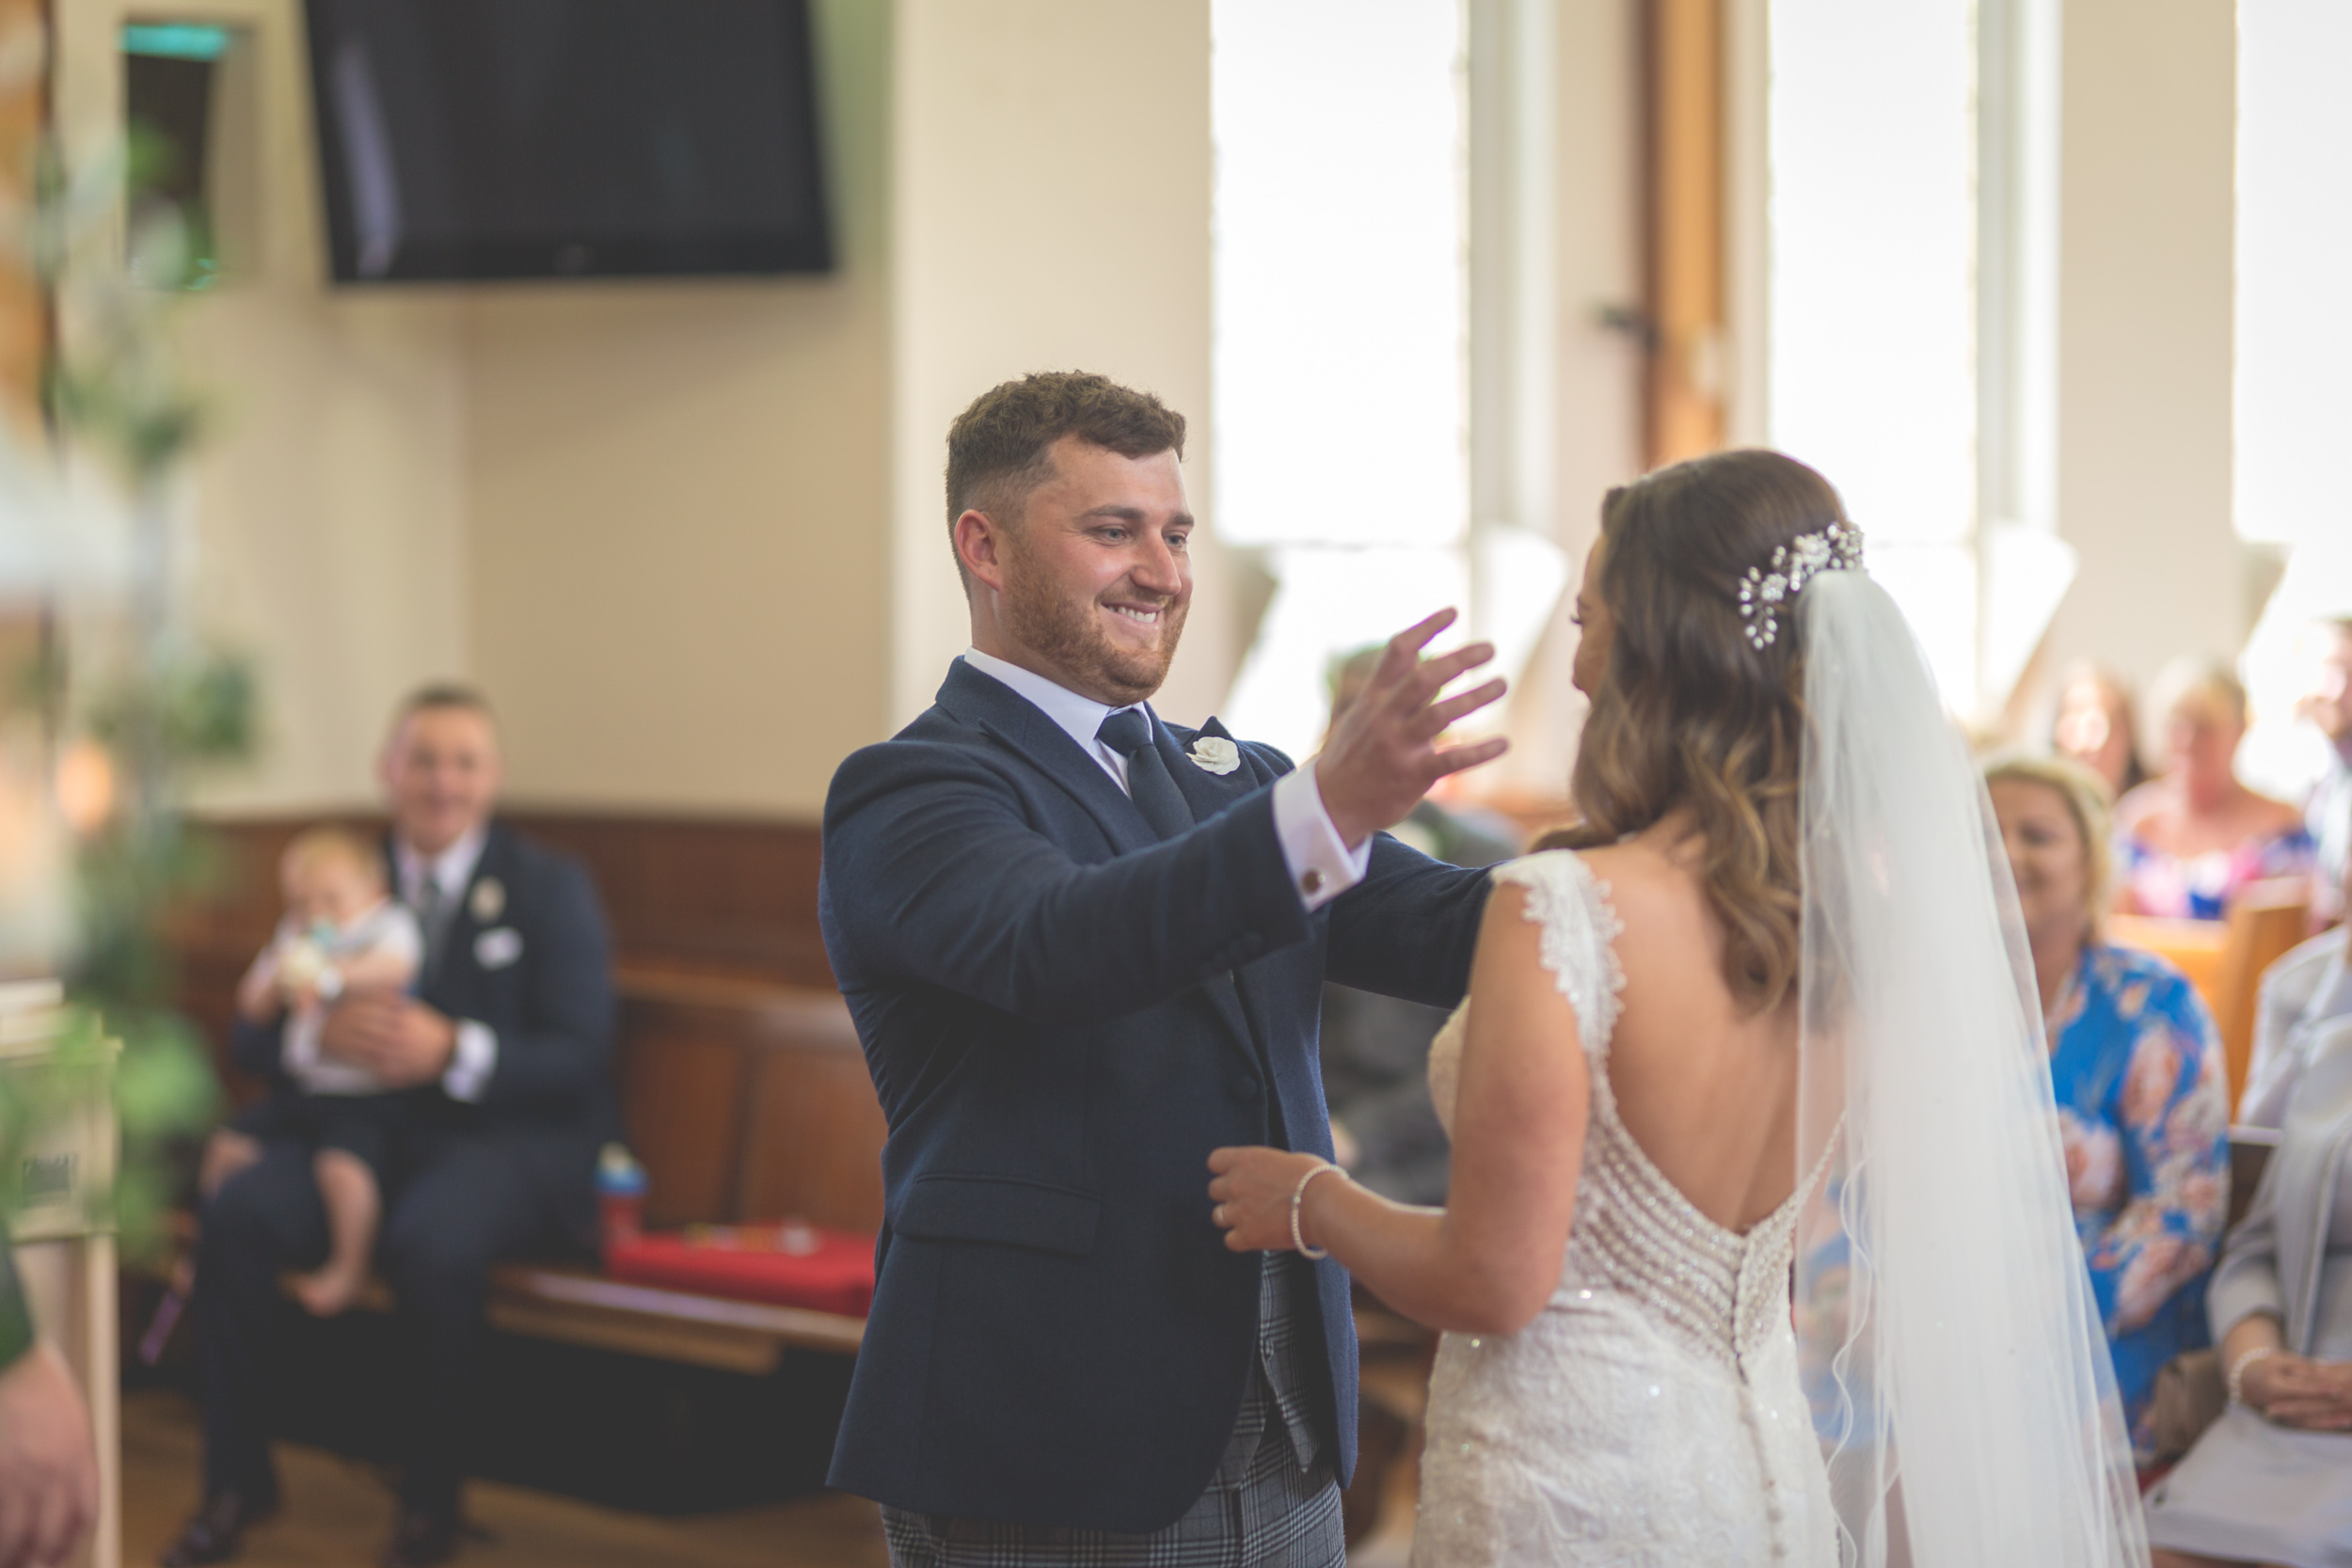 Brian McEwan | Northern Ireland Wedding Photographer | Rebecca & Michael | Ceremony-77.jpg